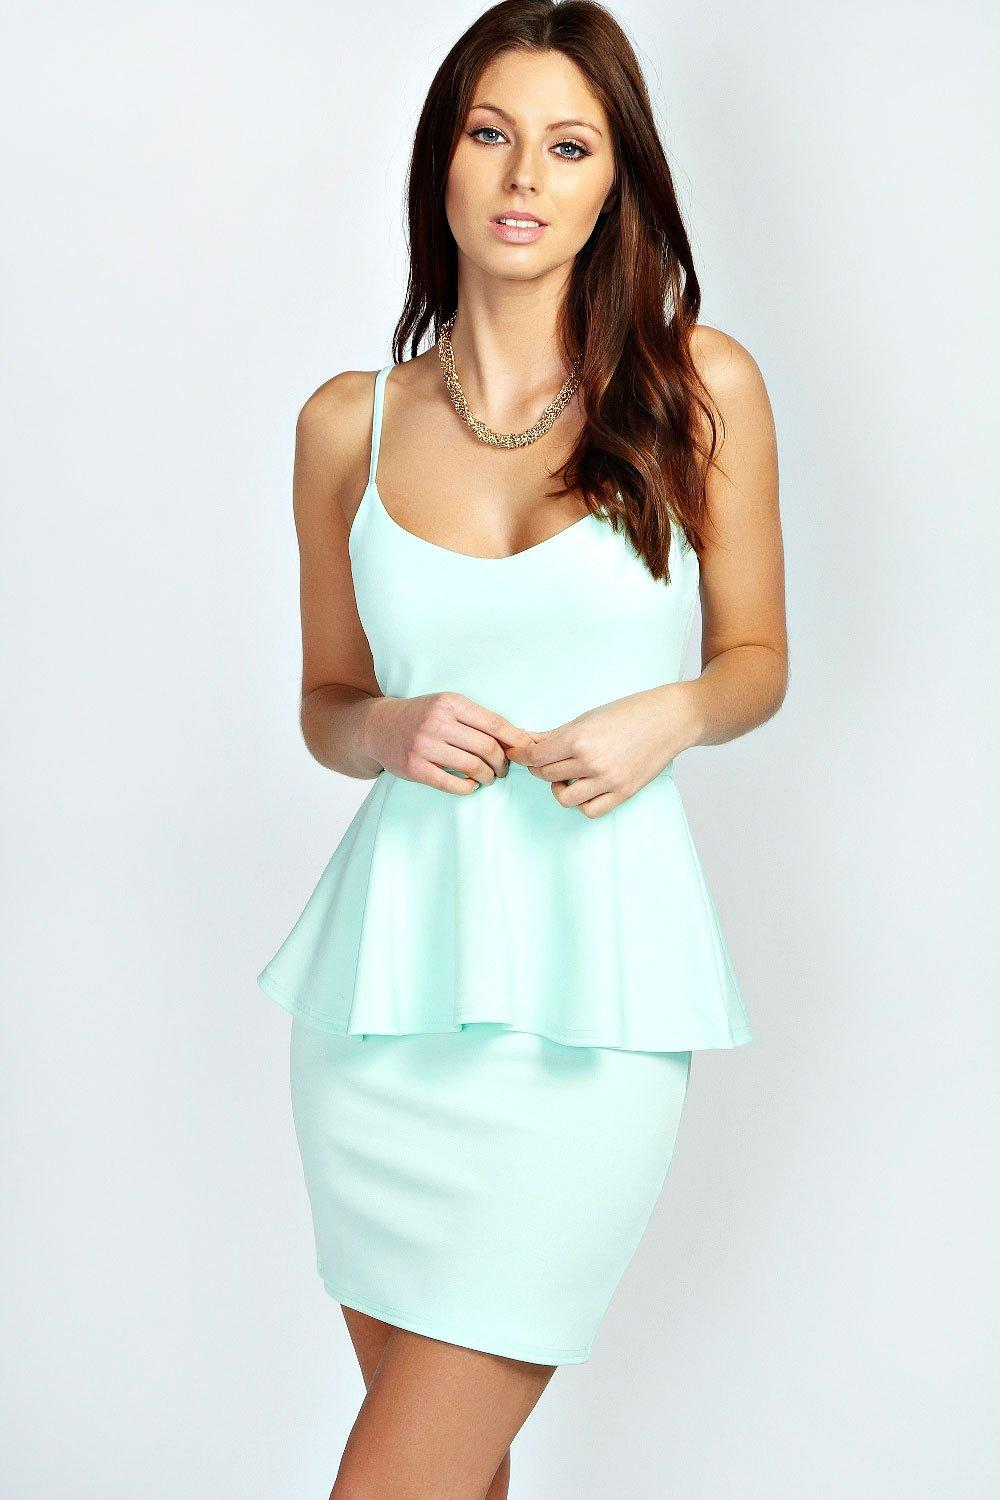 Adele Strappy Peplum Dress